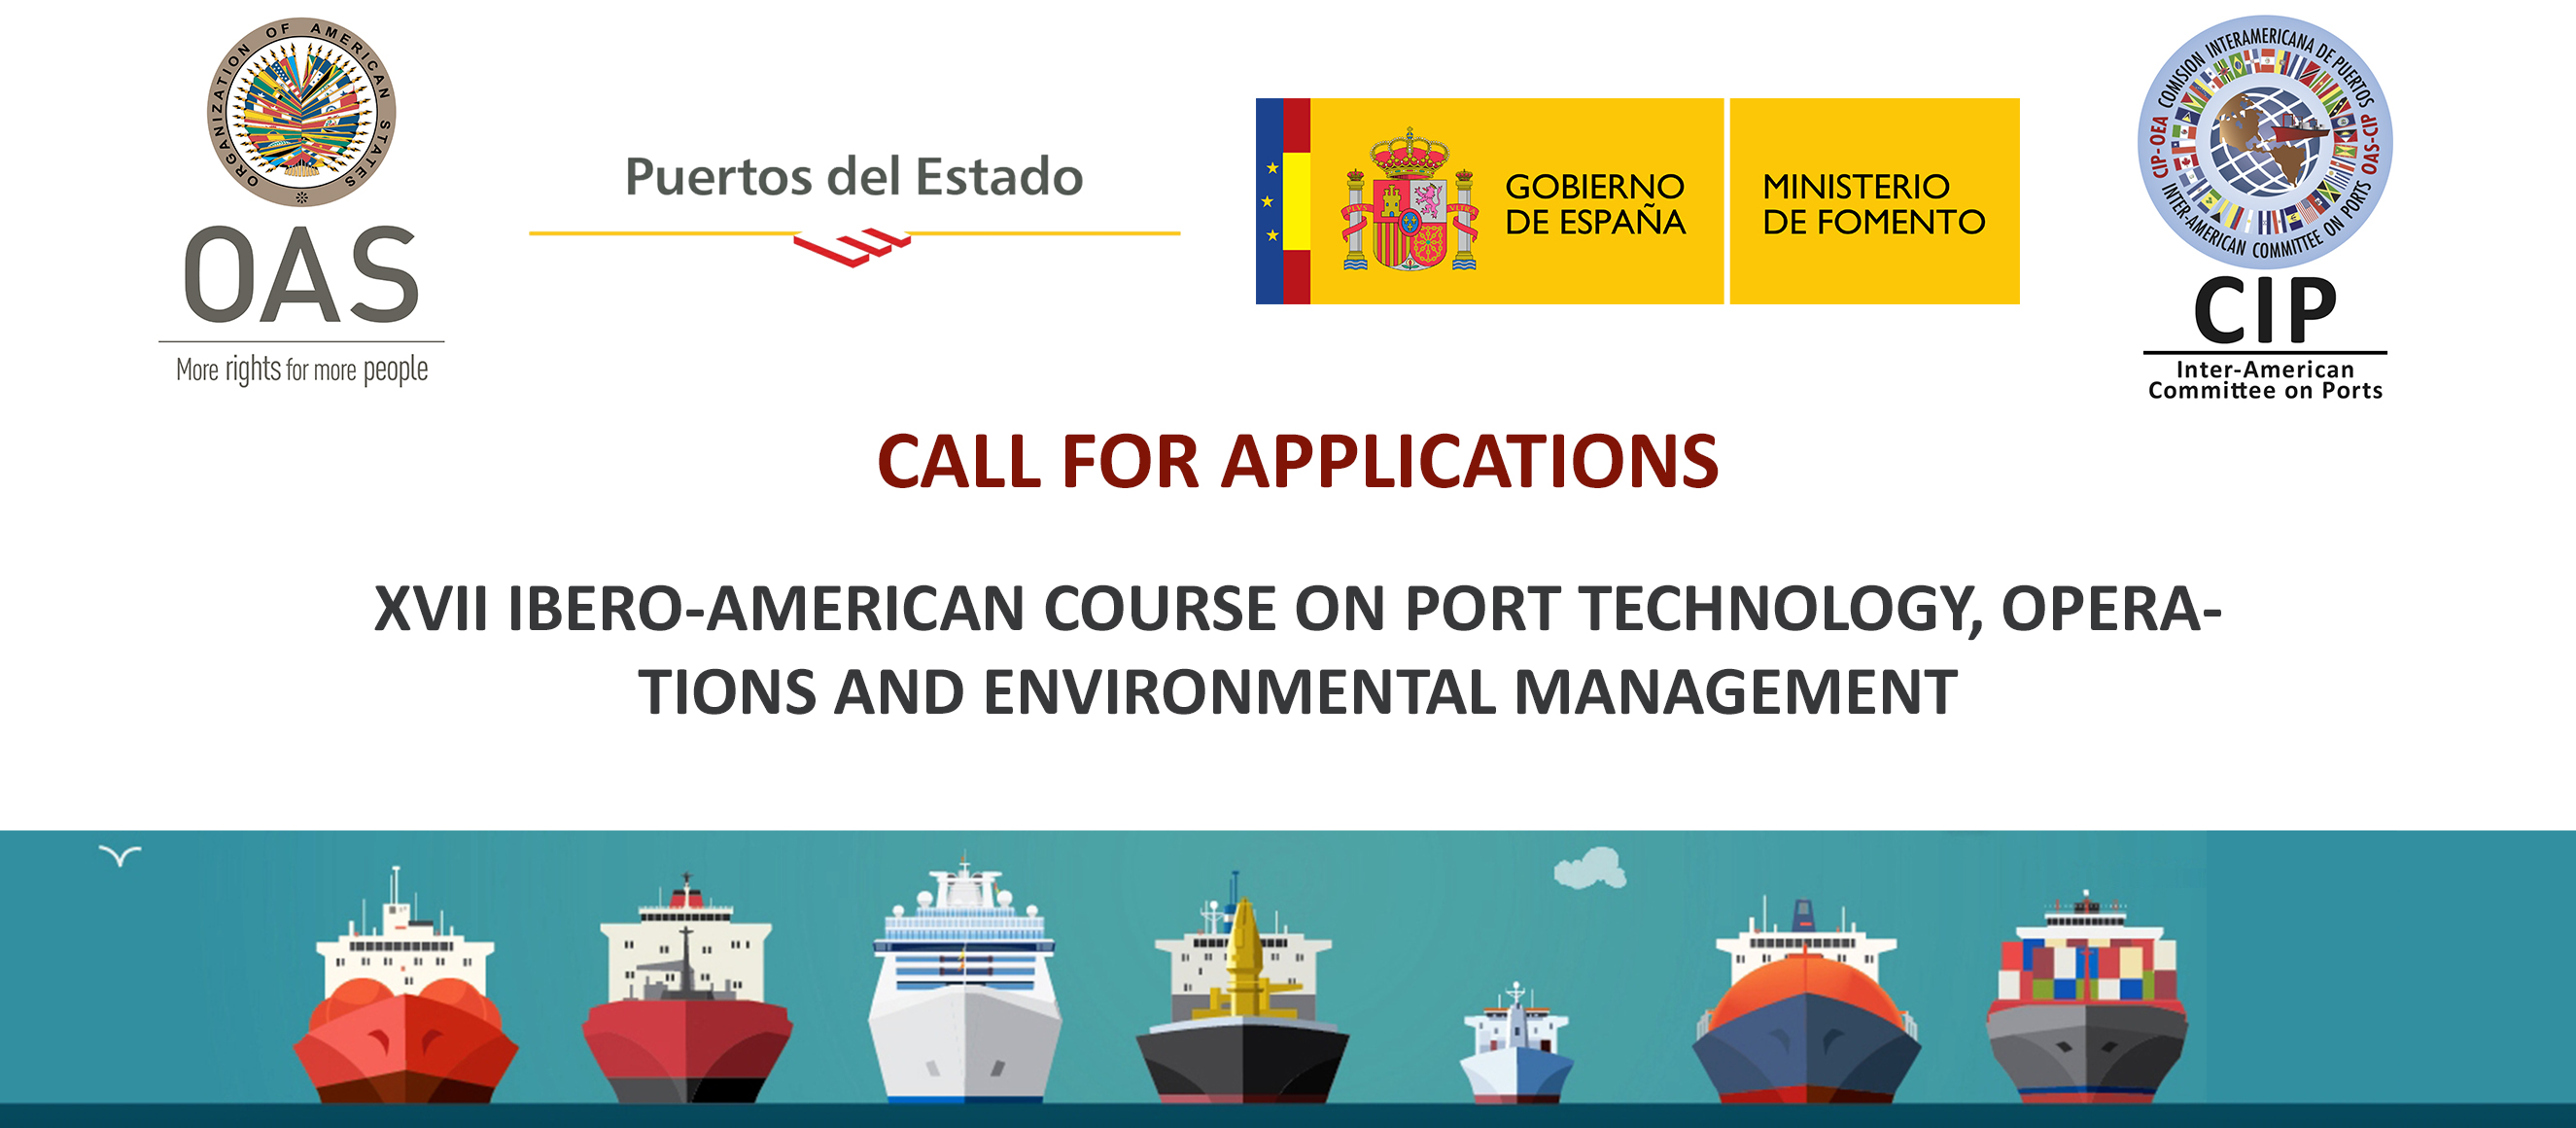 XVII Ibero-American Course on Technology, Operations and Environmental Management on Ports